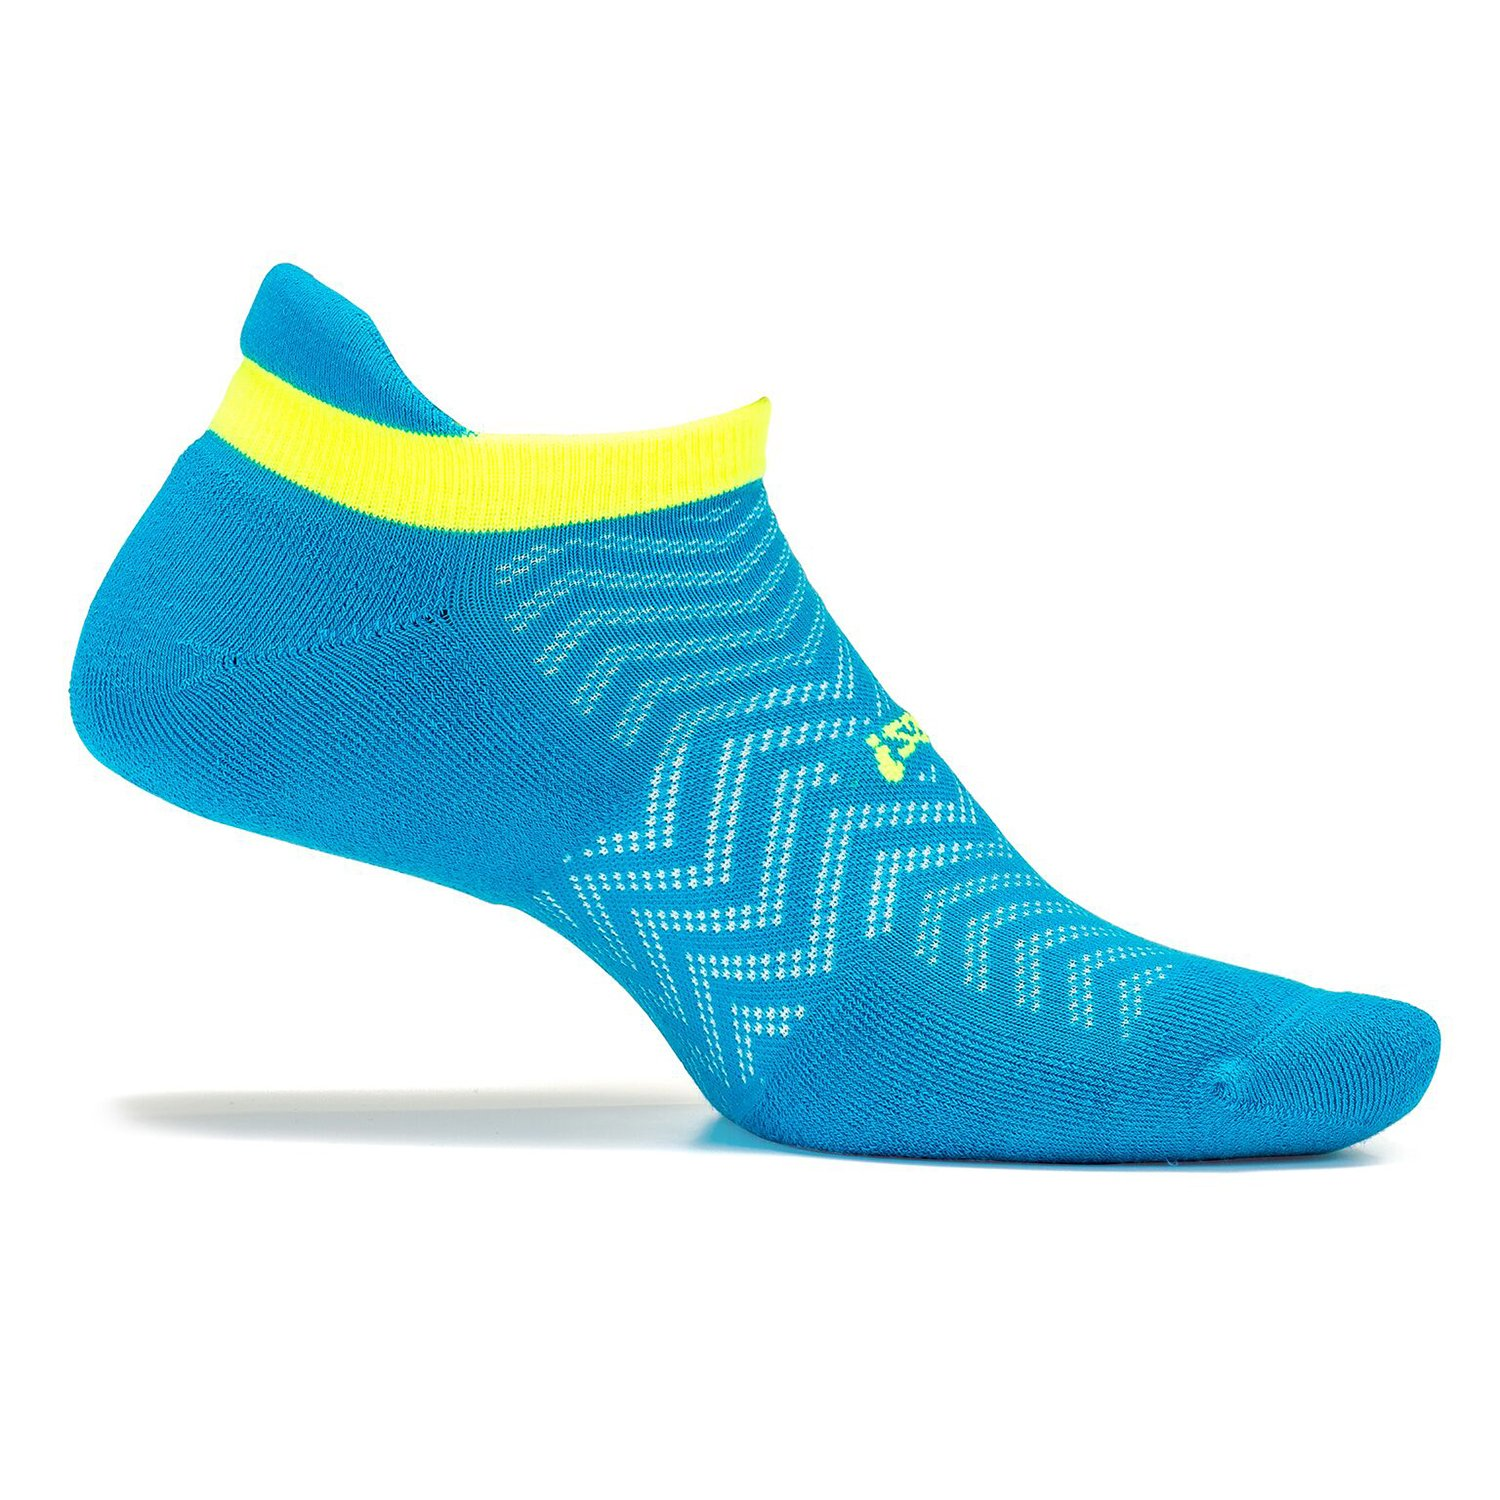 Feetures - High Performance Cushion - No Show Tab - Athletic Running Socks for Men and Women - Hawaiian Blue - Size Small